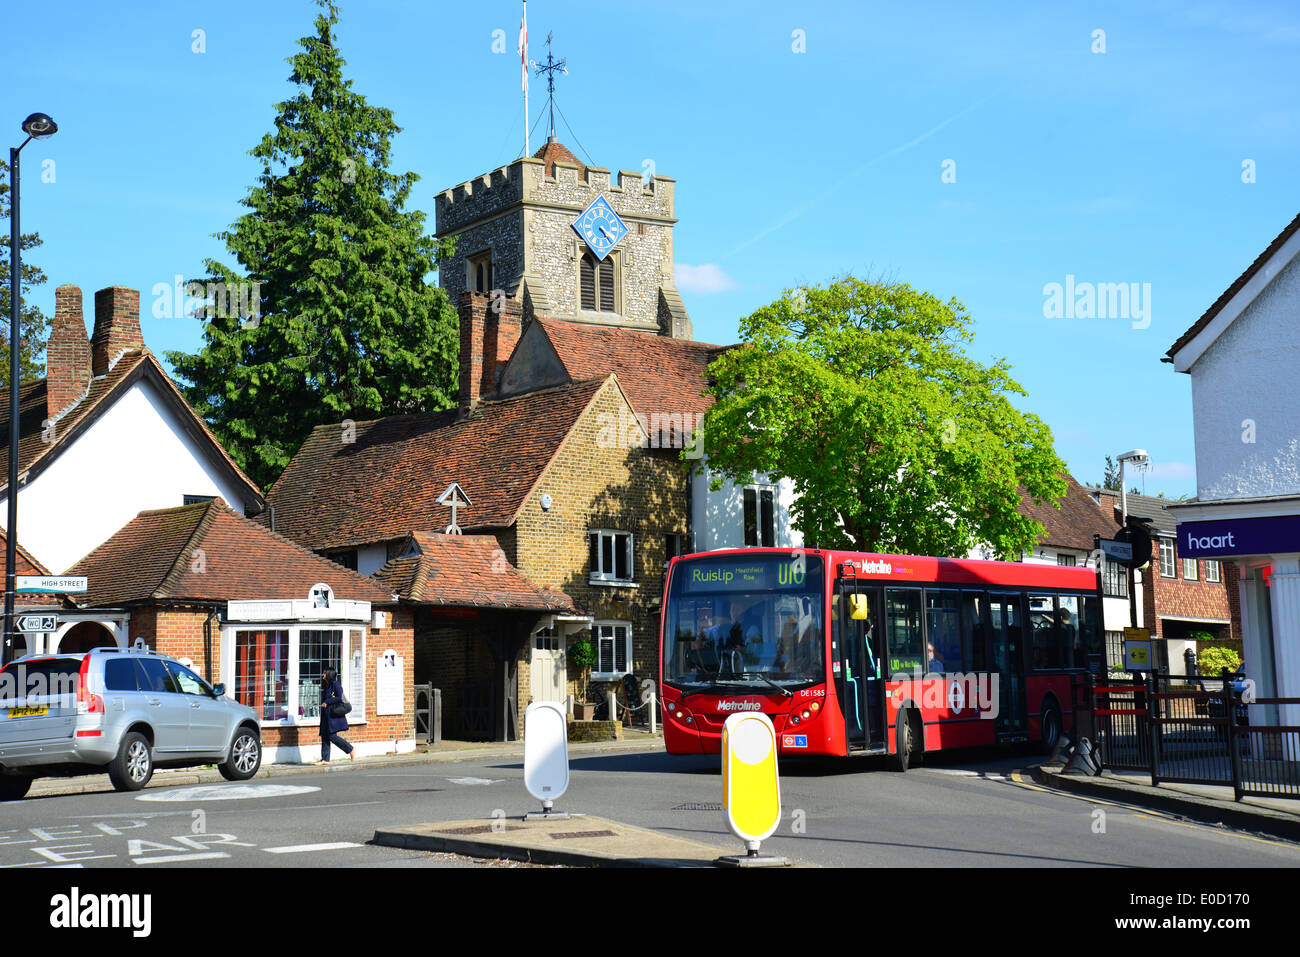 St Mary s Church  High Street  Ruislip  London Borough of Hillingdon   Greater London  England  United Kingdom. St Mary s Church  High Street  Ruislip  London Borough Of